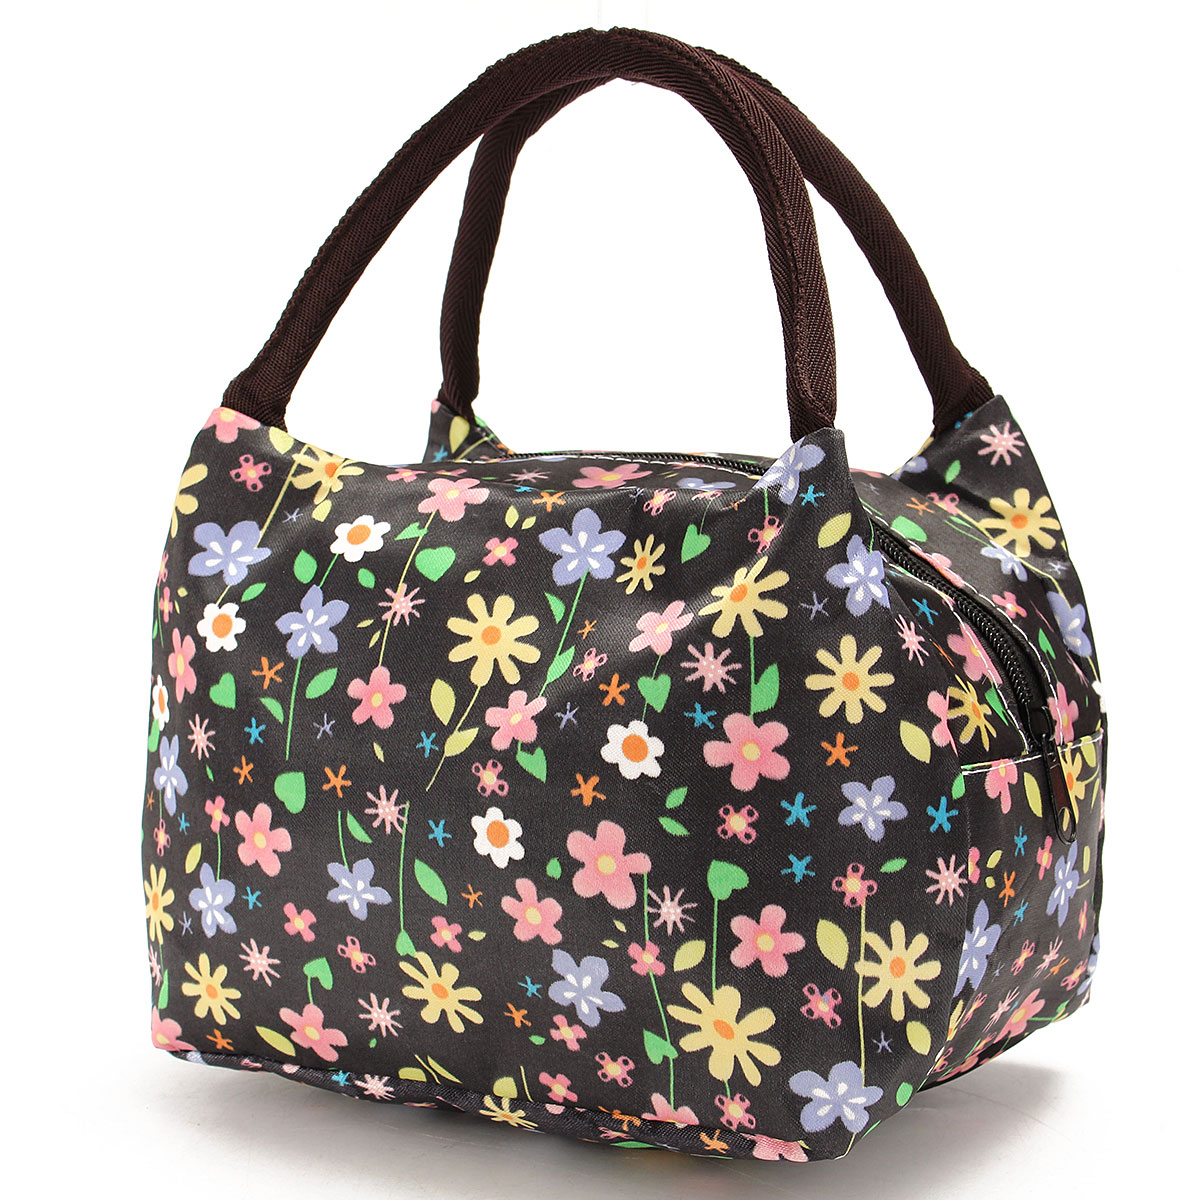 Portable-Bento-Lunch-Box-Bag-Insulated-Thermal-Waterproof-Picnic-Carry-Tote thumbnail 31